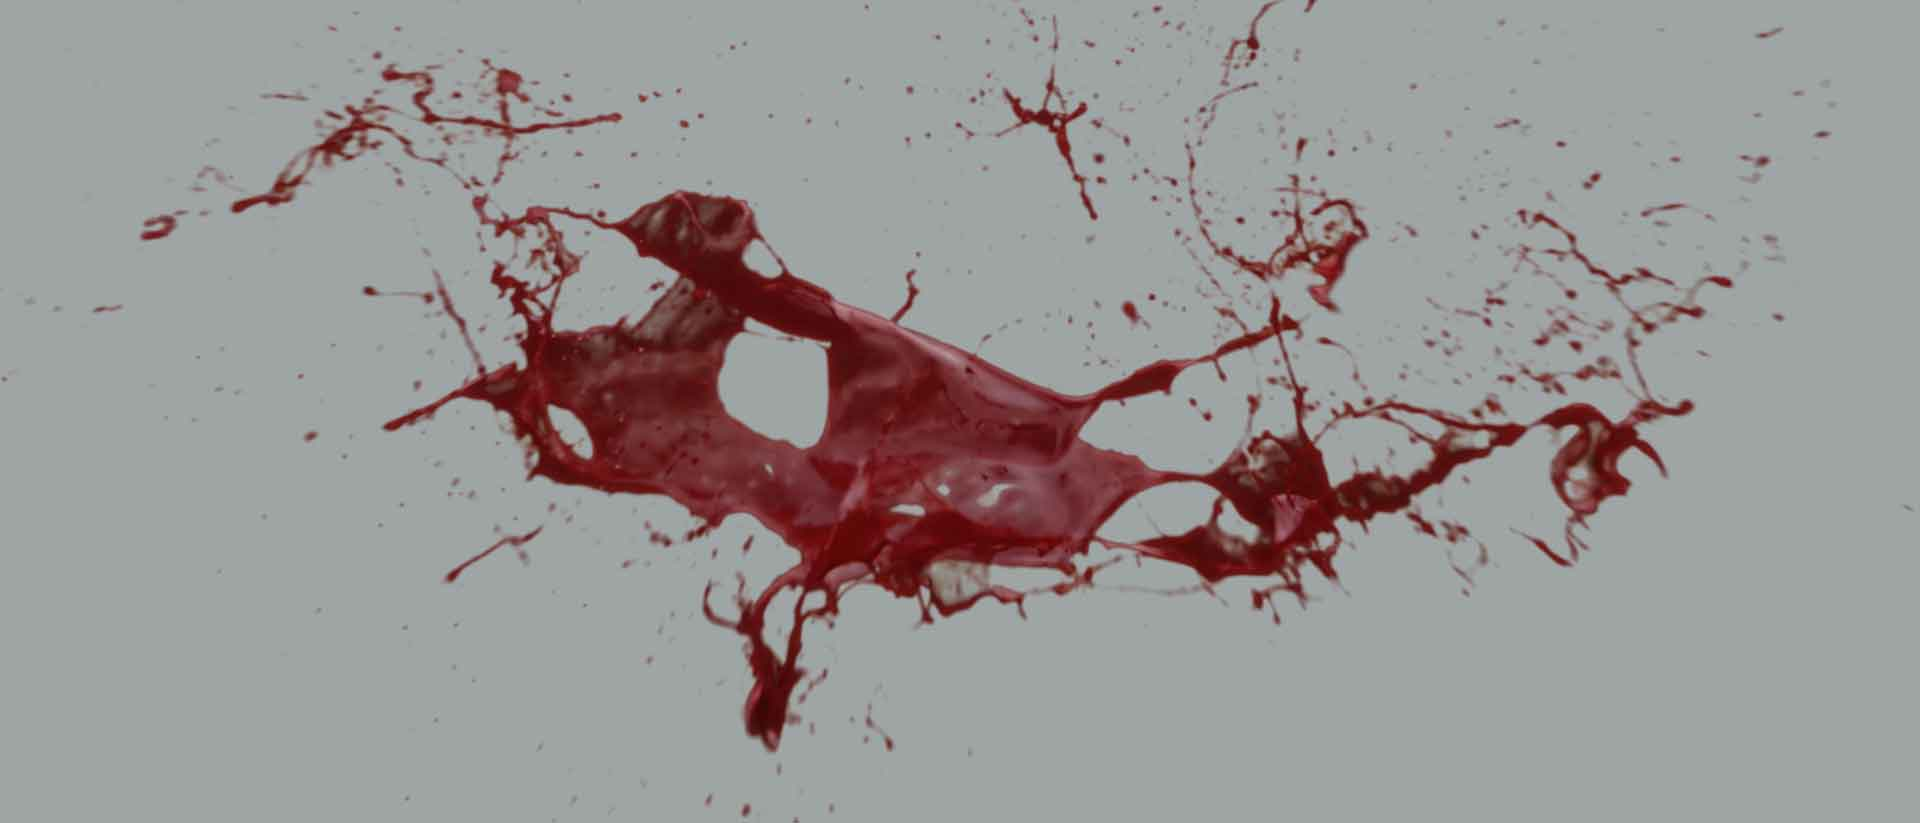 Blood hits and splatter banner image